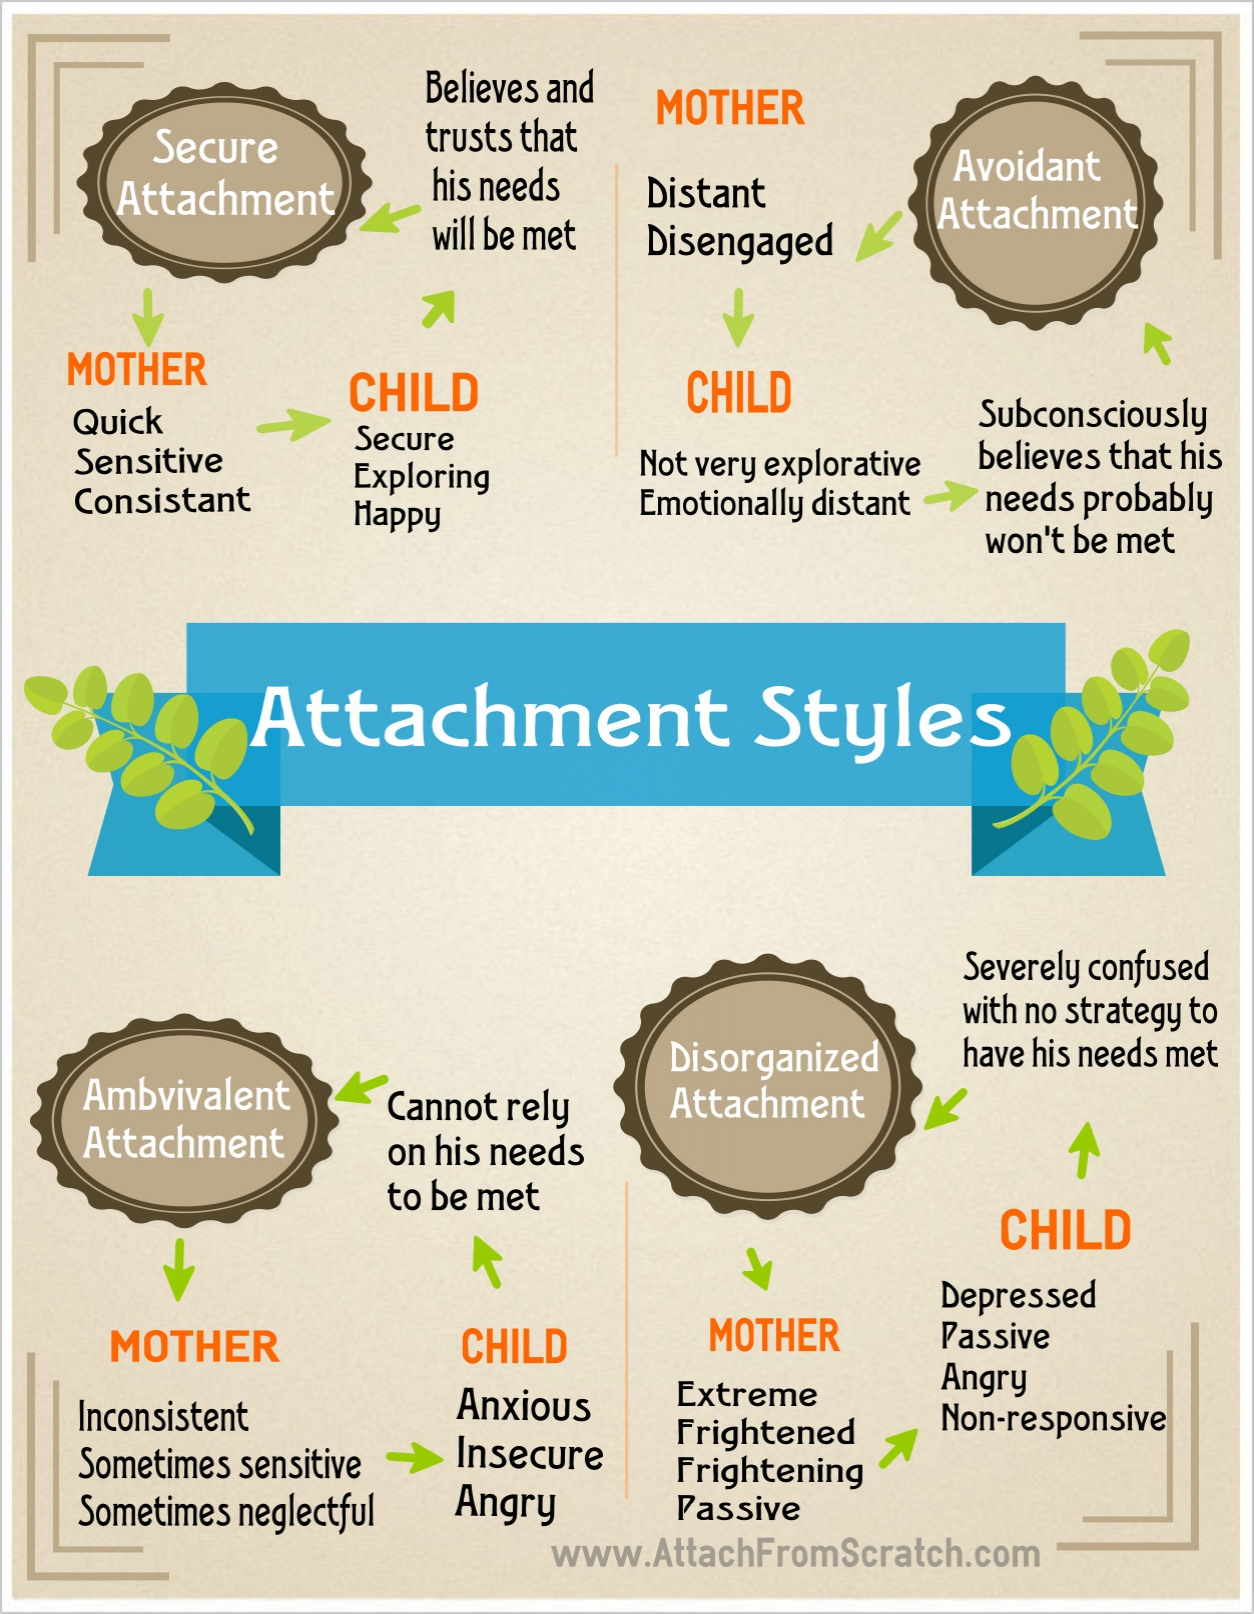 importance of early infant attachment and child development Attachment theory is founded on the idea that an infant's early relationship with their caregiver is crucial for social and emotional development it is an old theory, born during the 1950s but .